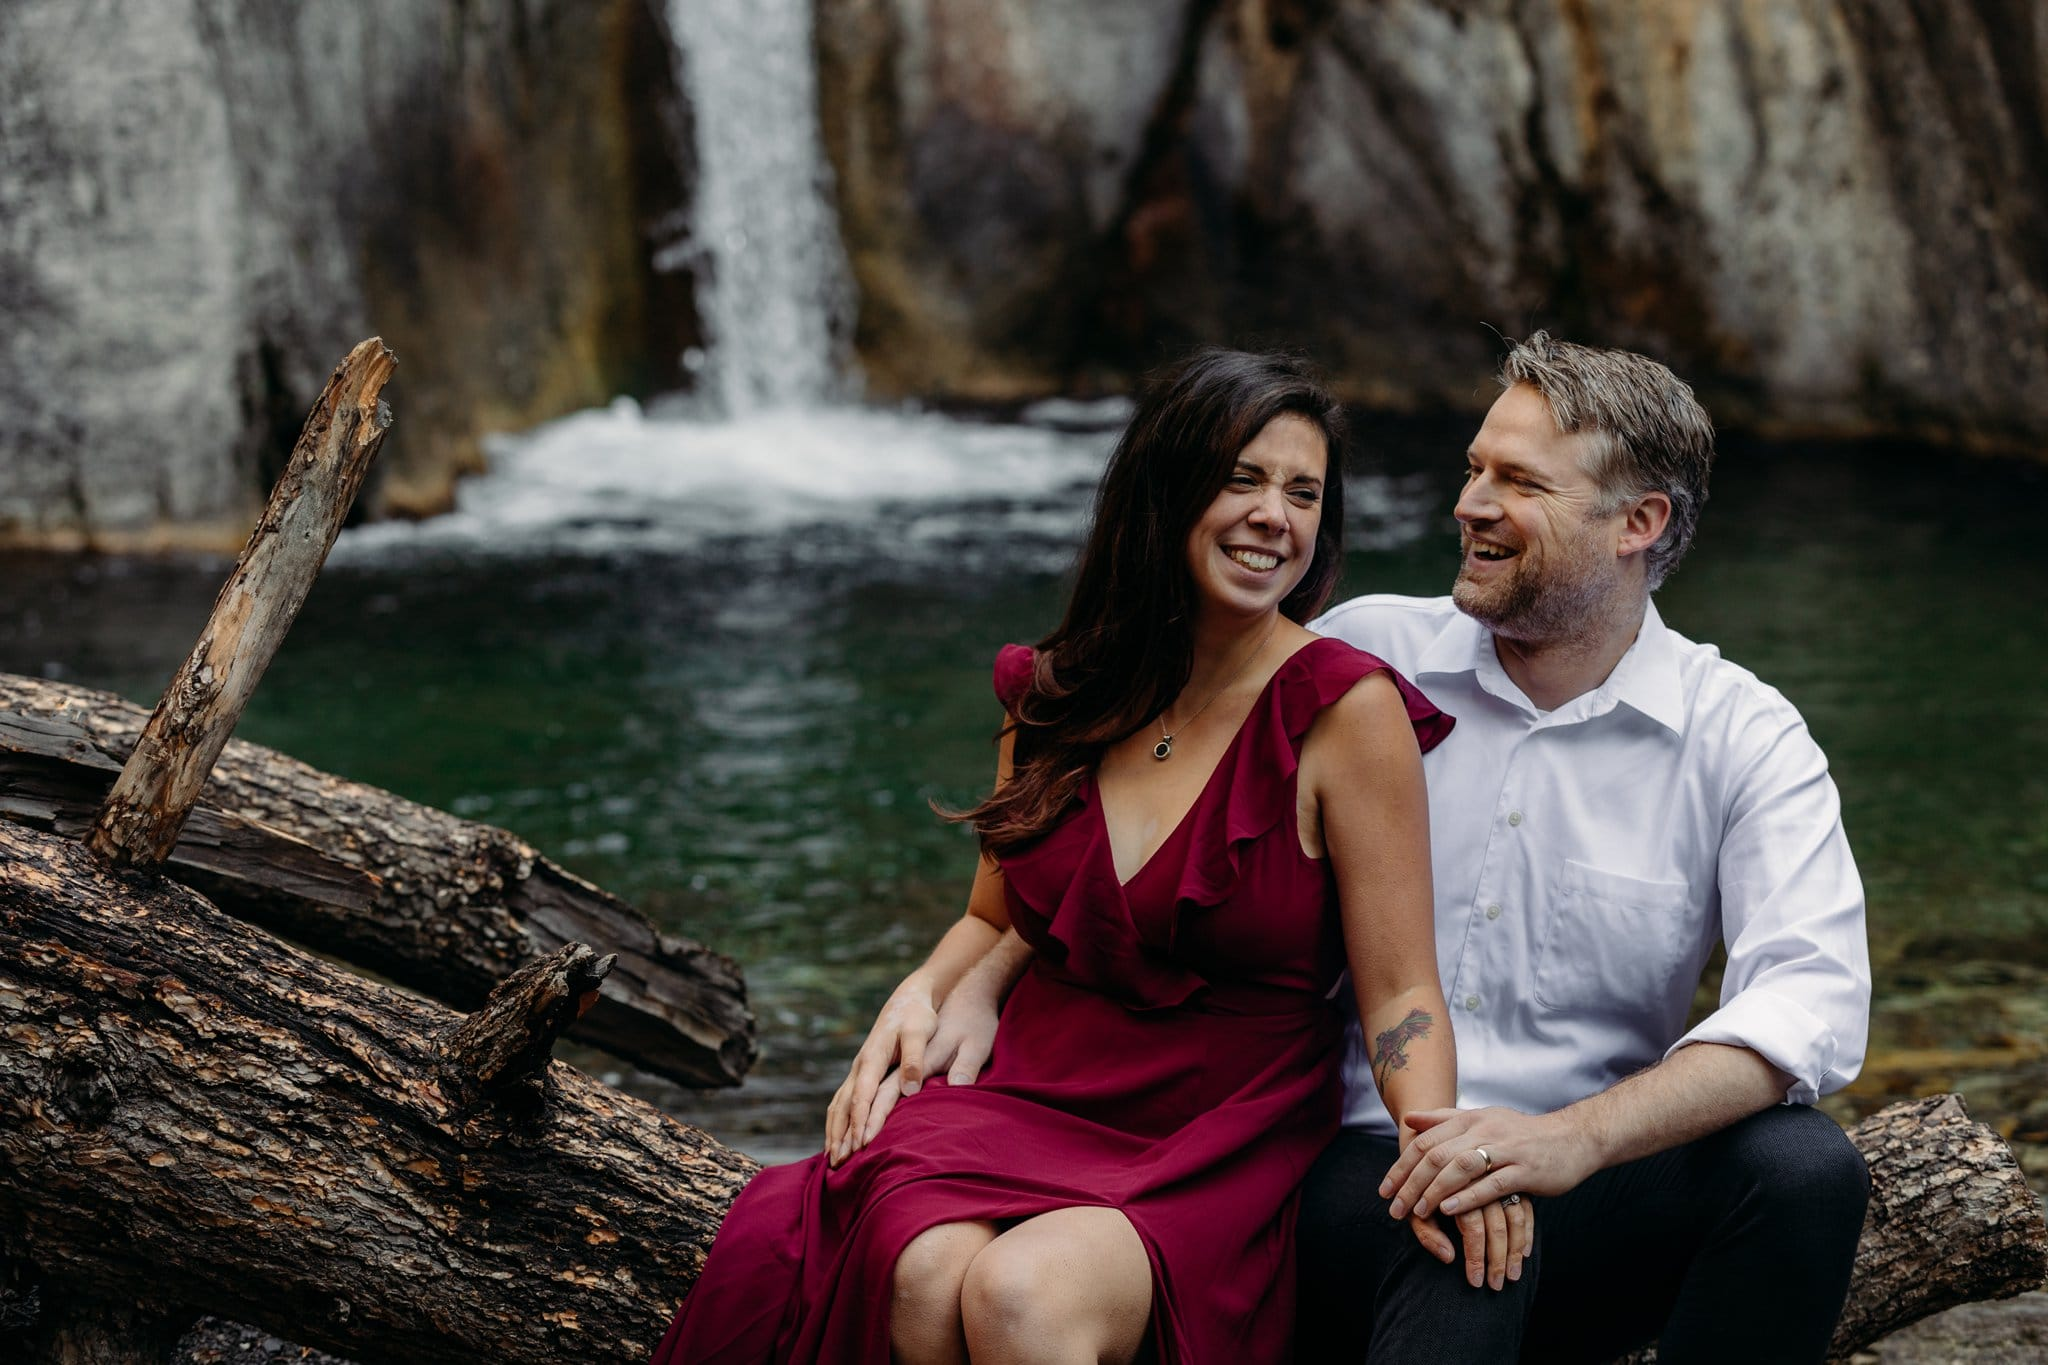 AshleyDaphnePhotography Calgary Photographer Wedding Engagement Couple Rocky Mountains Barrier Lake_0014.jpg